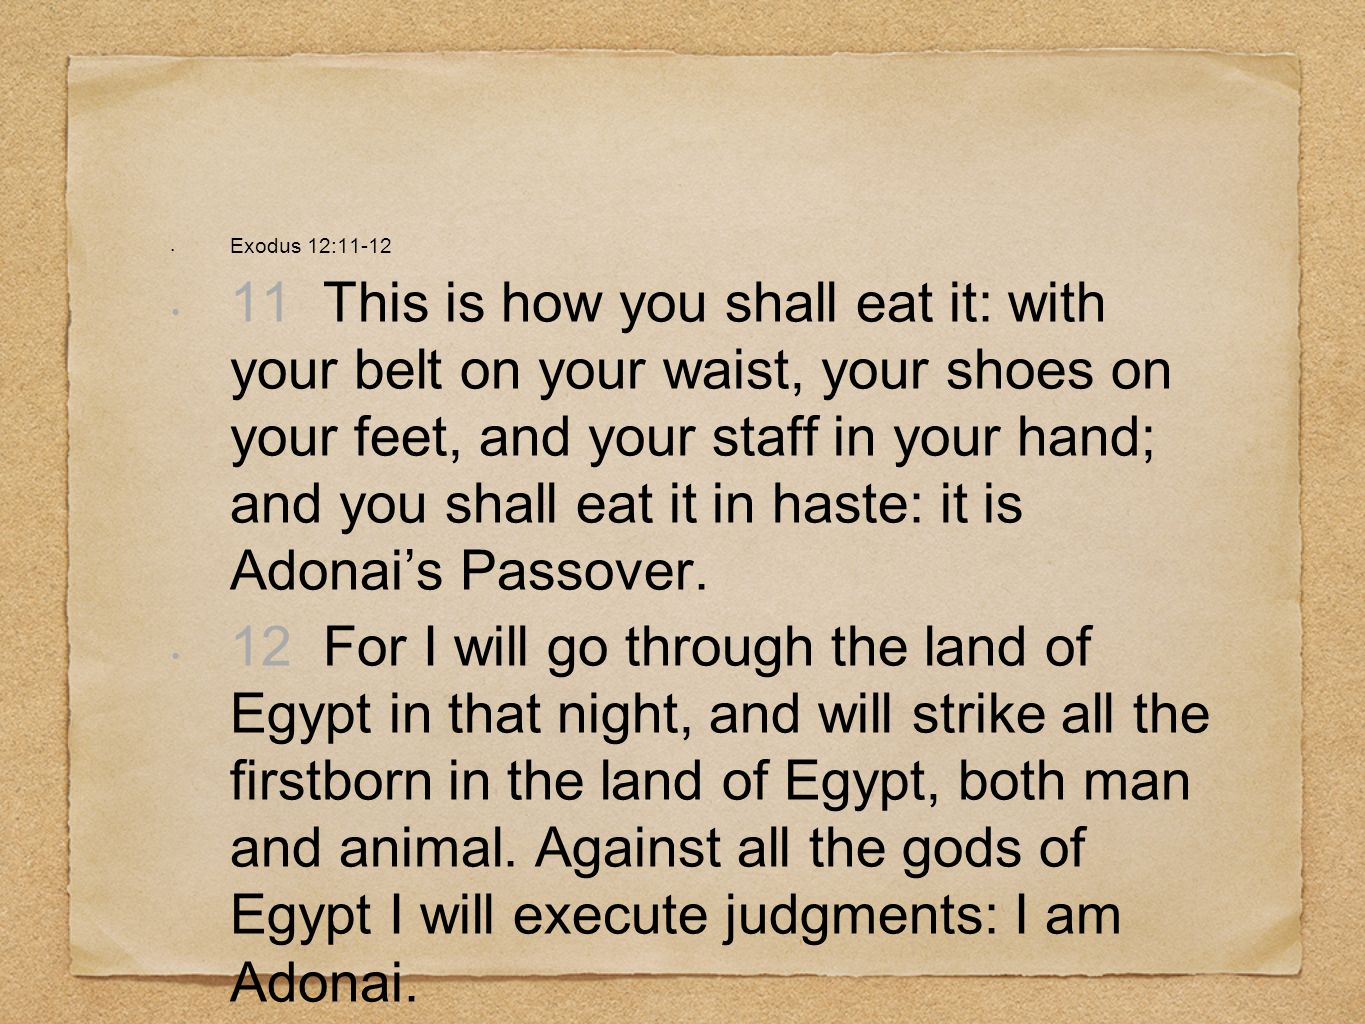 Exodus 12:11-12 11 This is how you shall eat it: with your belt on your waist, your shoes on your feet, and your staff in your hand; and you shall eat